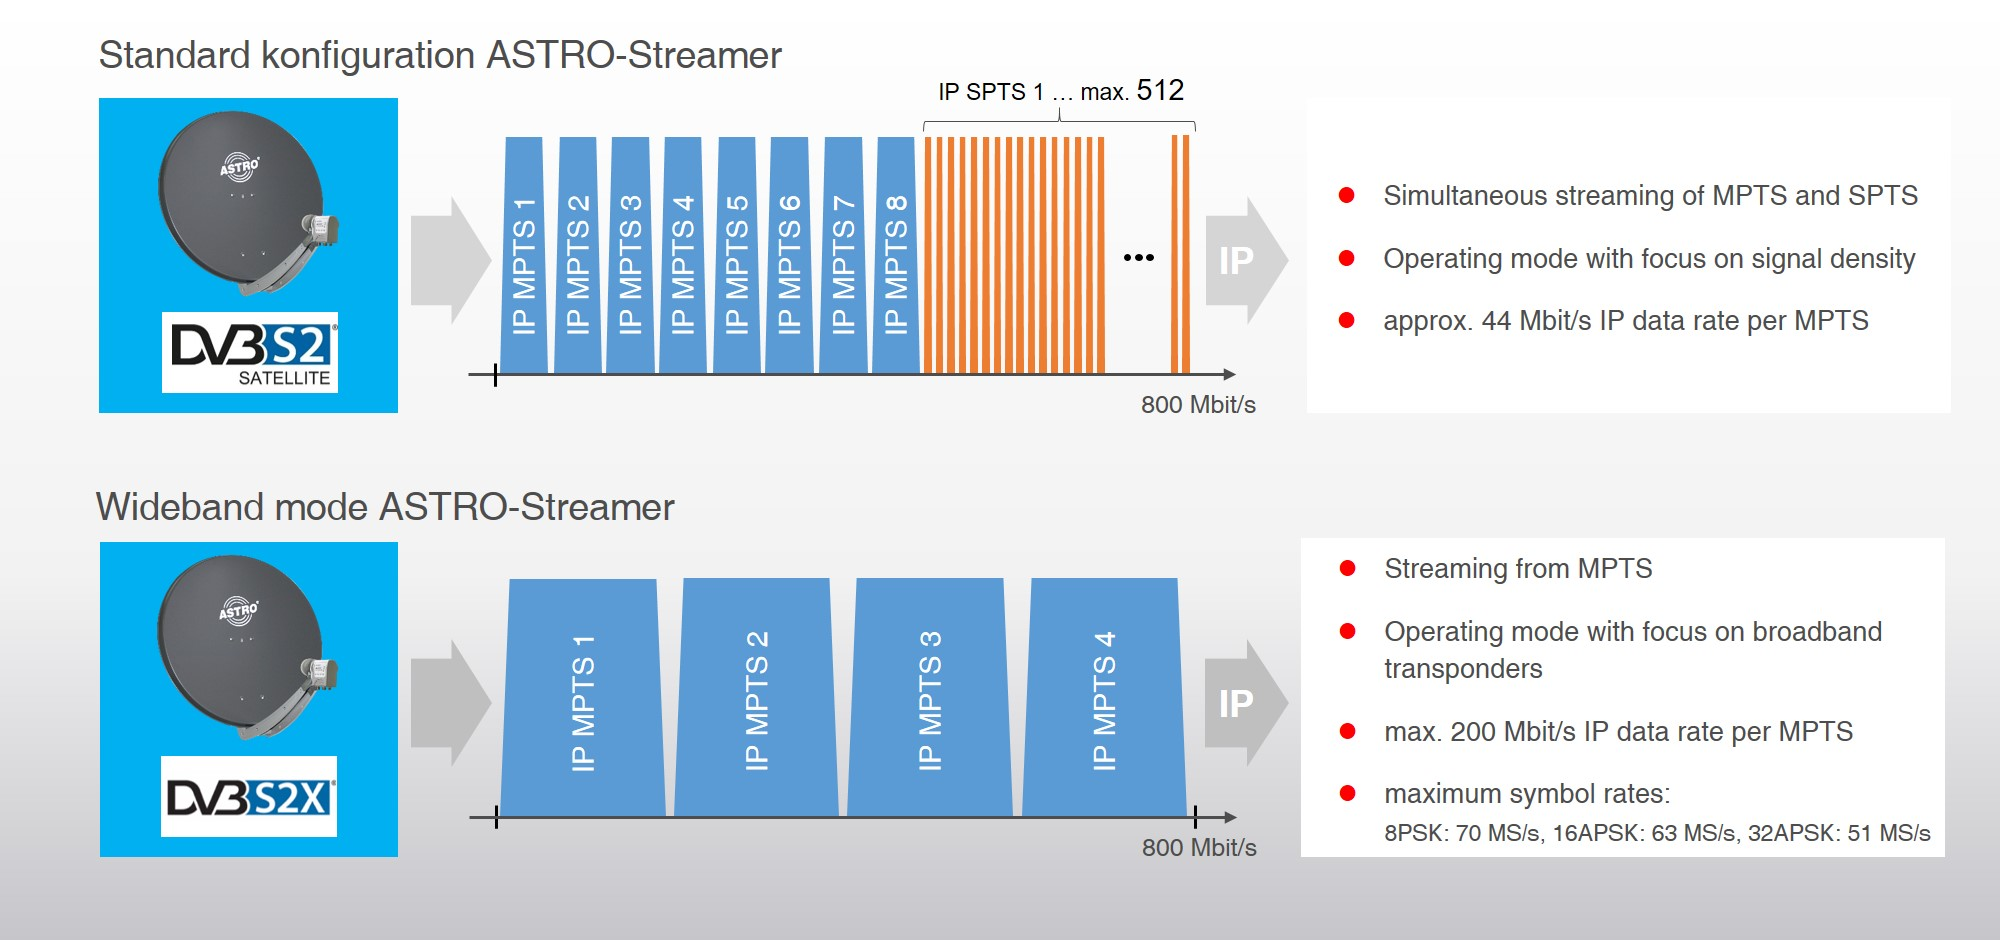 Wideband mode at ASTRO streamer